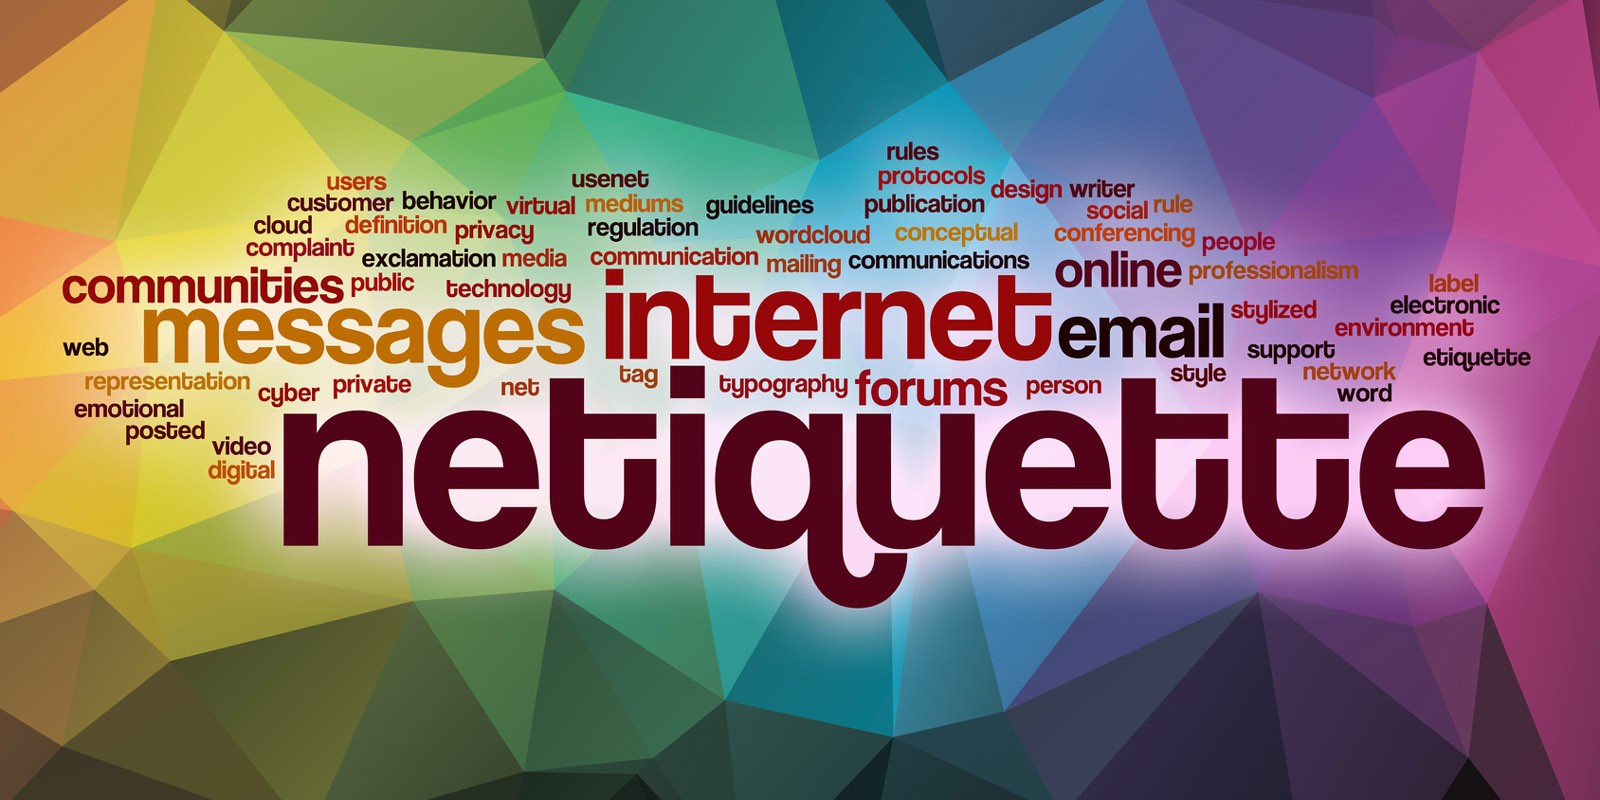 netiquette-featured.jpg